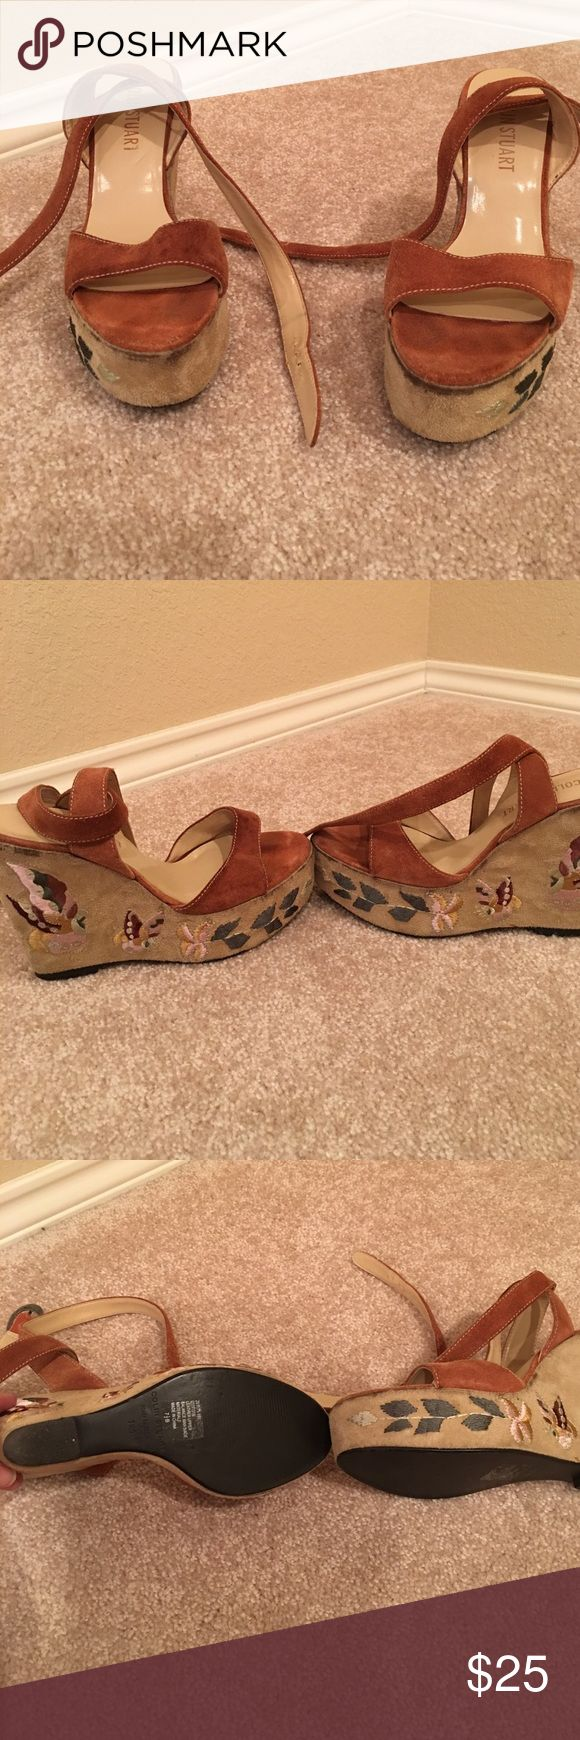 Colin Stuart strappy wedges These are well loved ❤️ Colin Stuart wedges with a beautiful butterfly design on sides! They are used as you can see in pics but they still have plenty of life left in them! I loved wearing these out for girls night out or dates. Colin Stuart Shoes Wedges